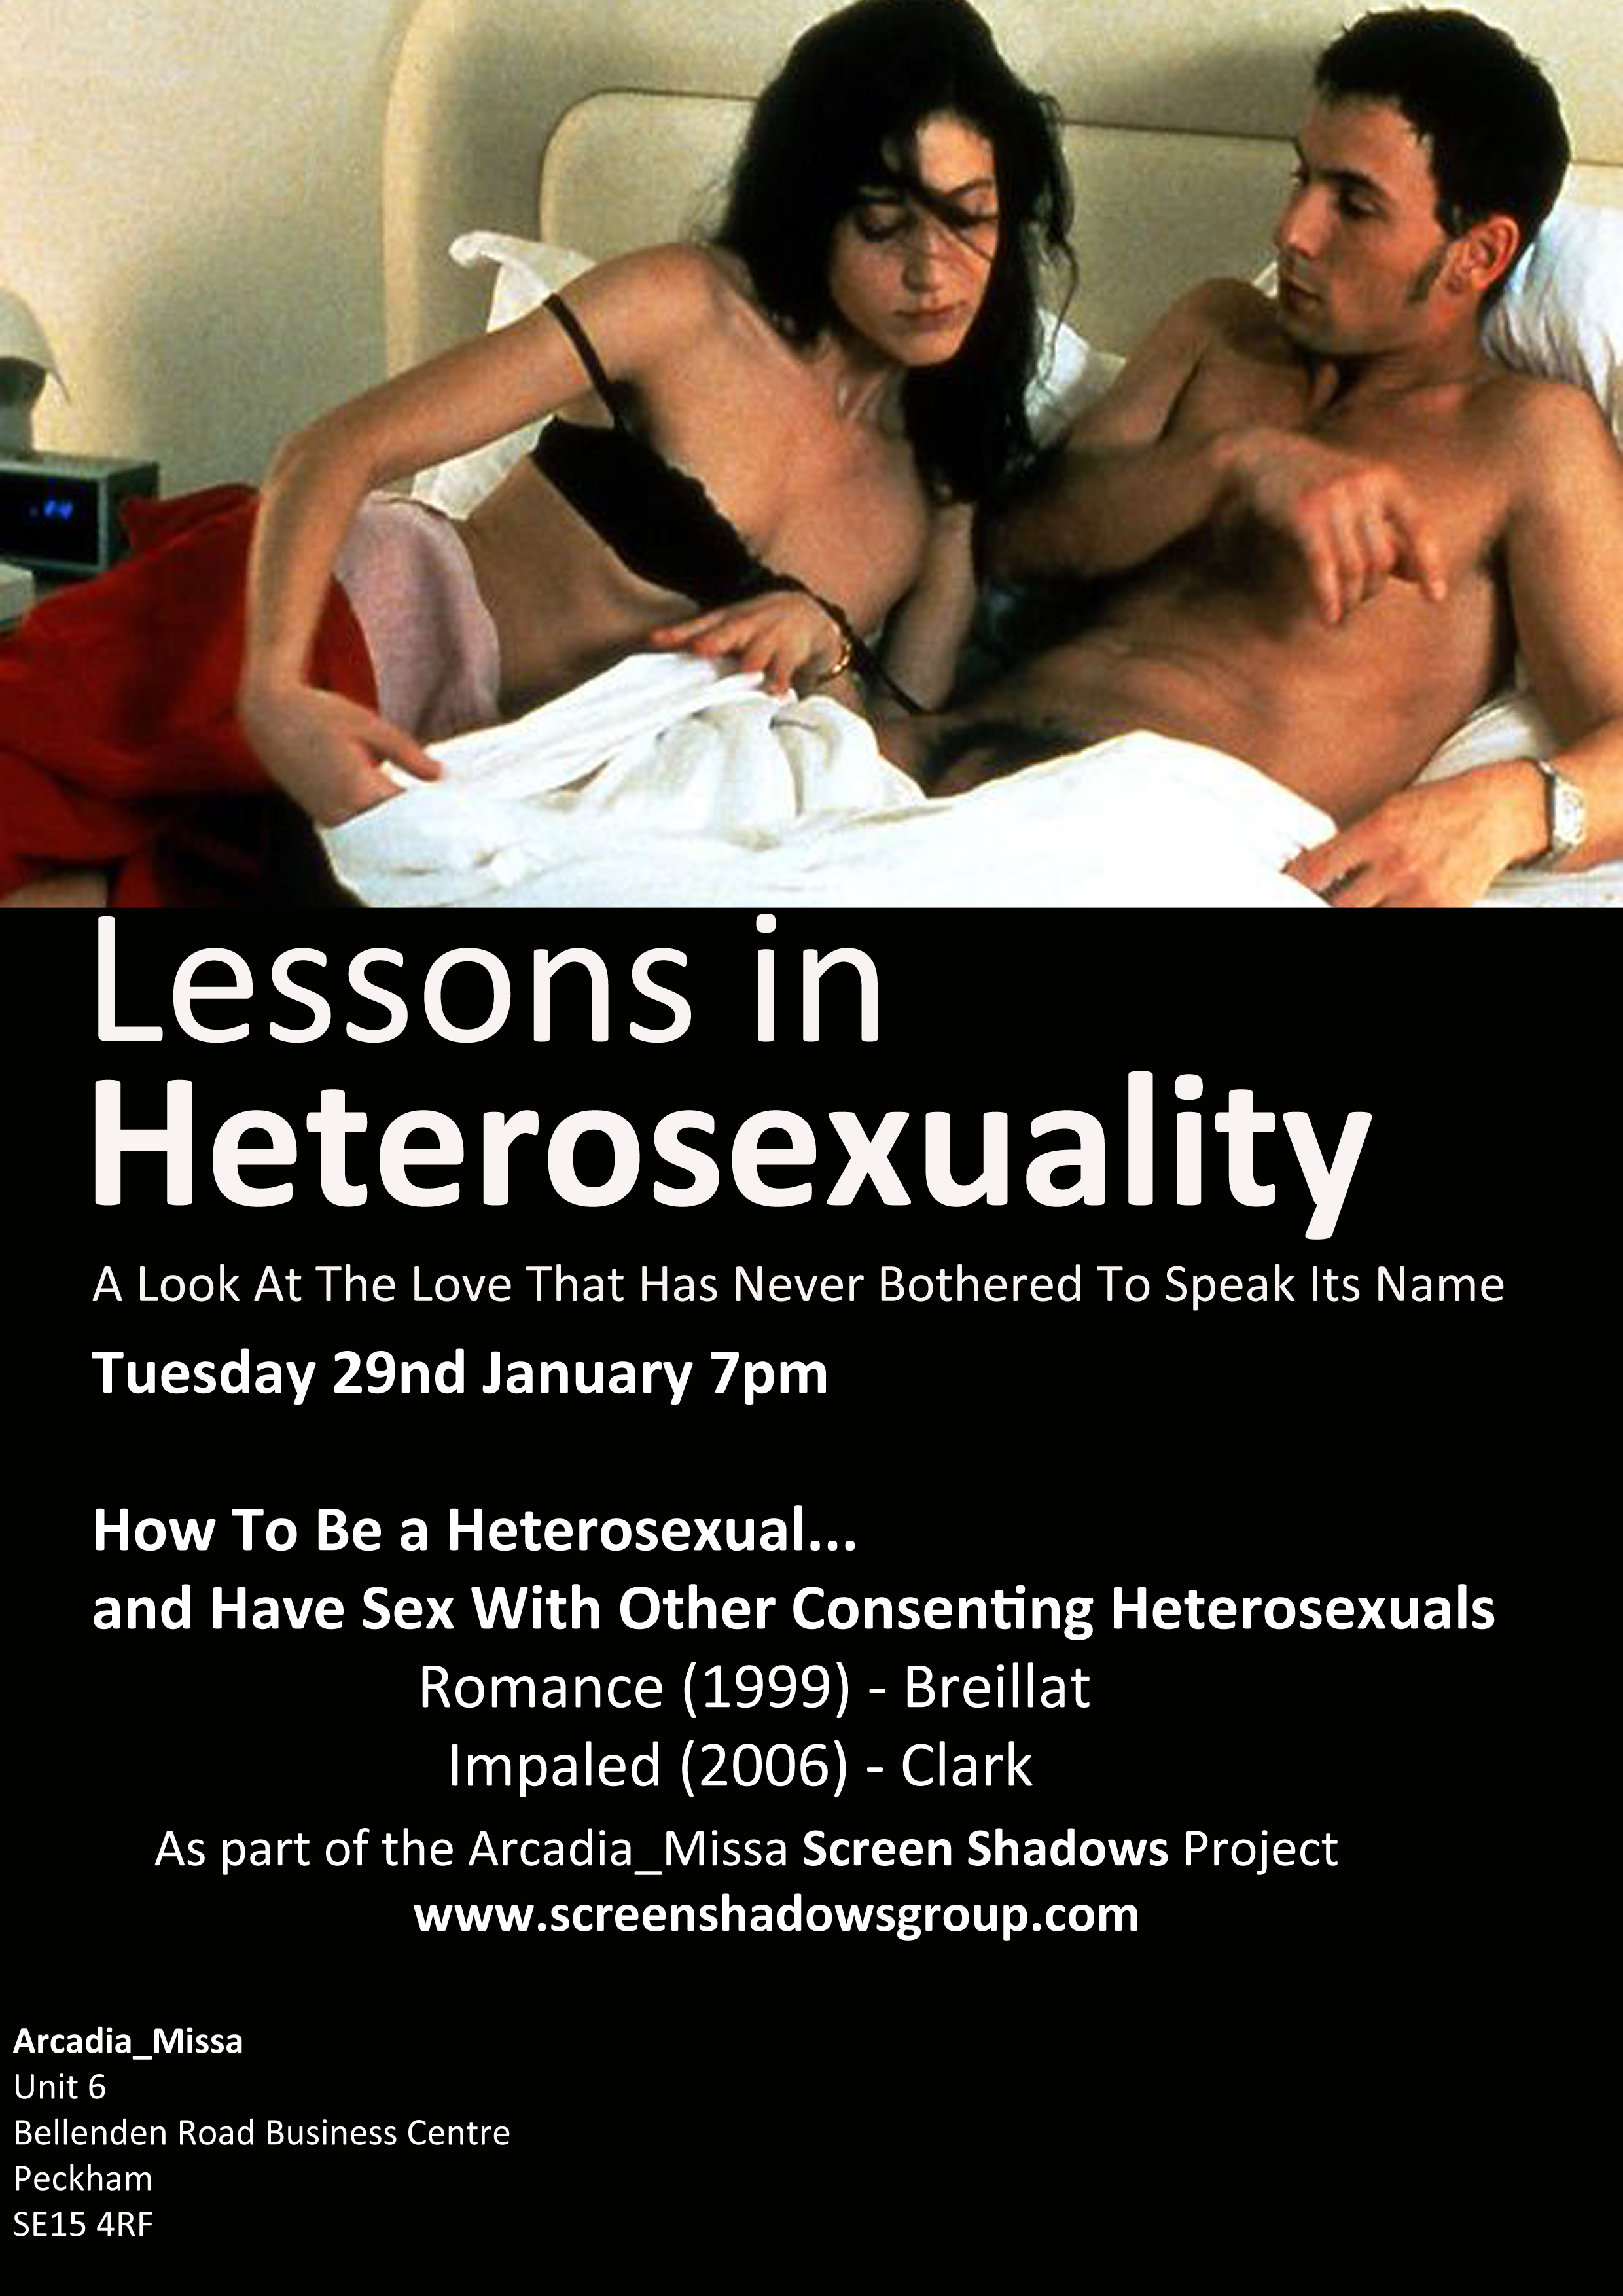 How To Be A Heterosexual…and Have Sex With Other Consenting ...: screenshadowsgroup.com/2013/01/24/lessons-in-heterosexuality-3